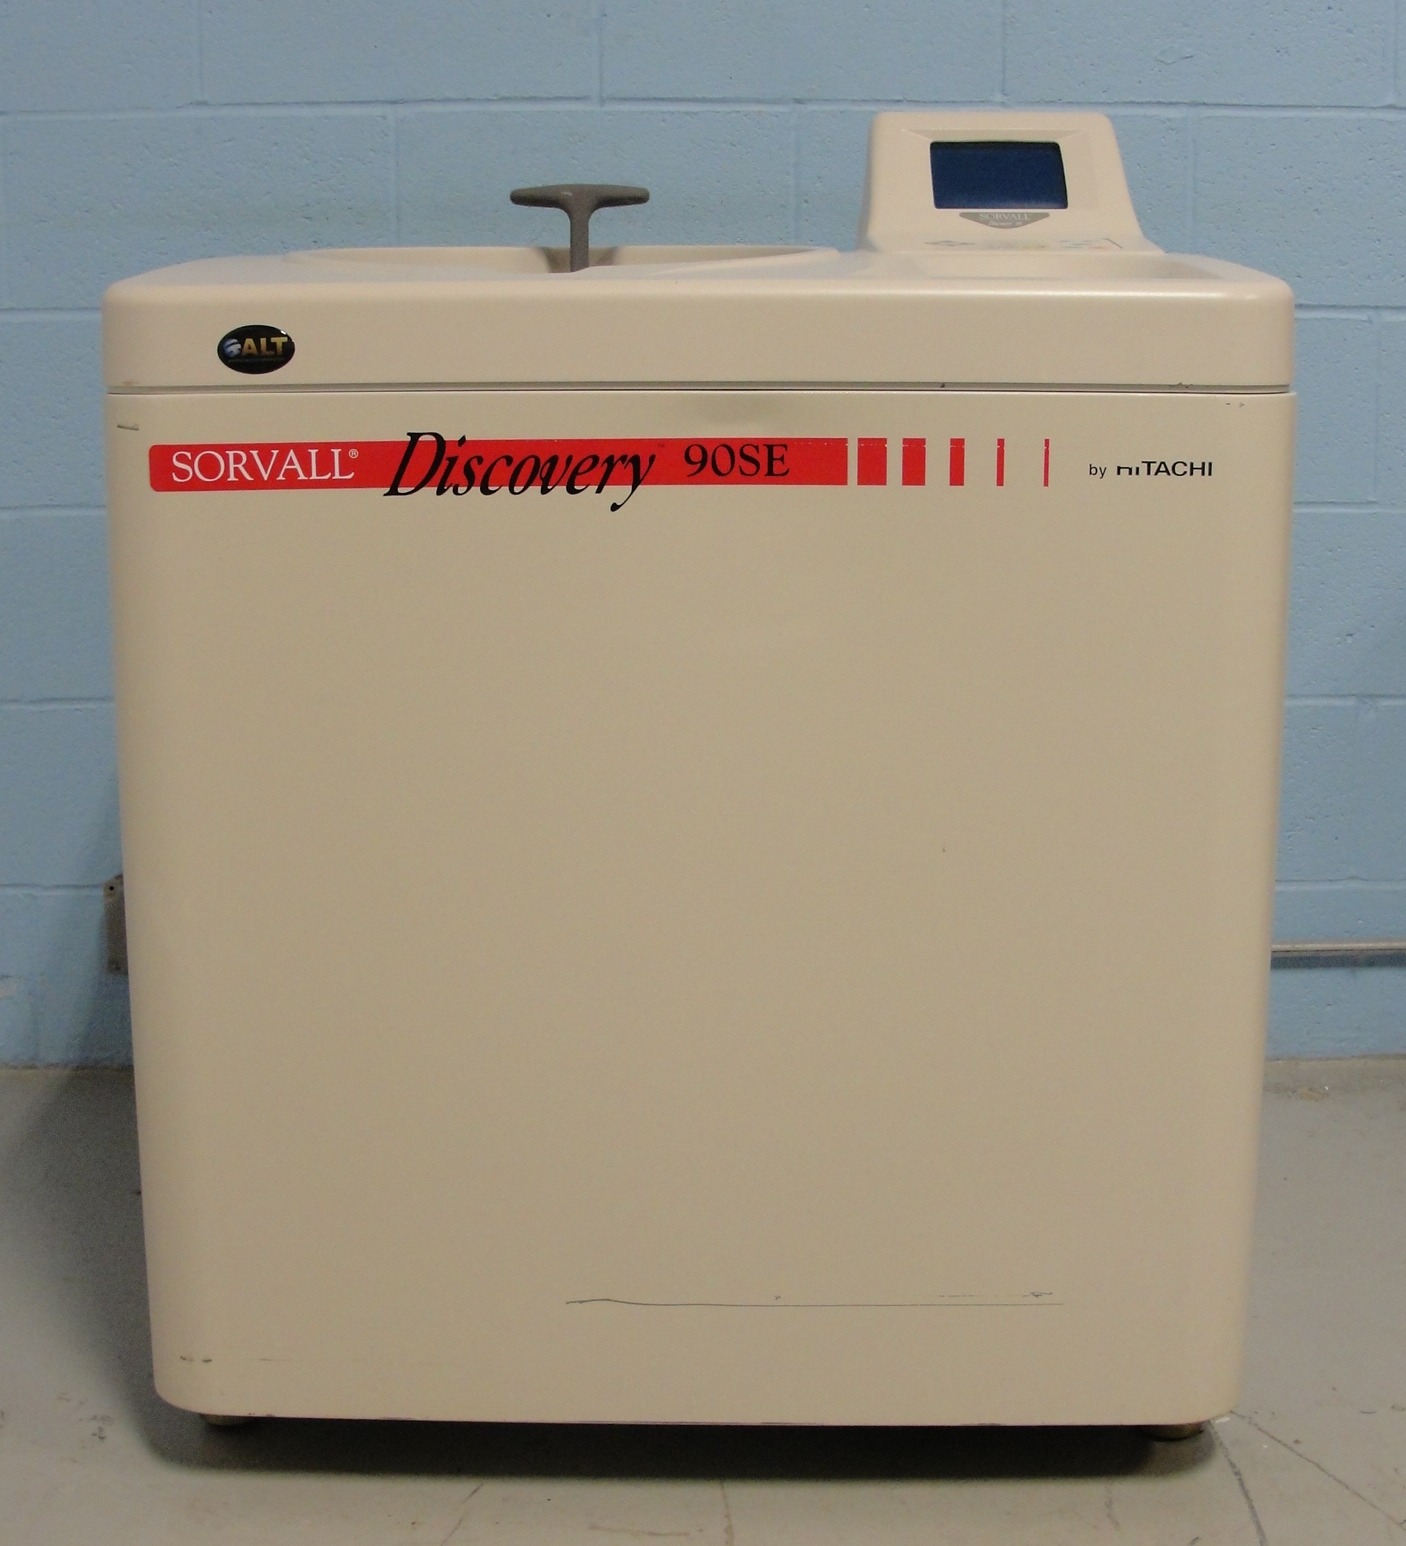 Sorvall Discovery 90SE Ultra Centrifuge Image